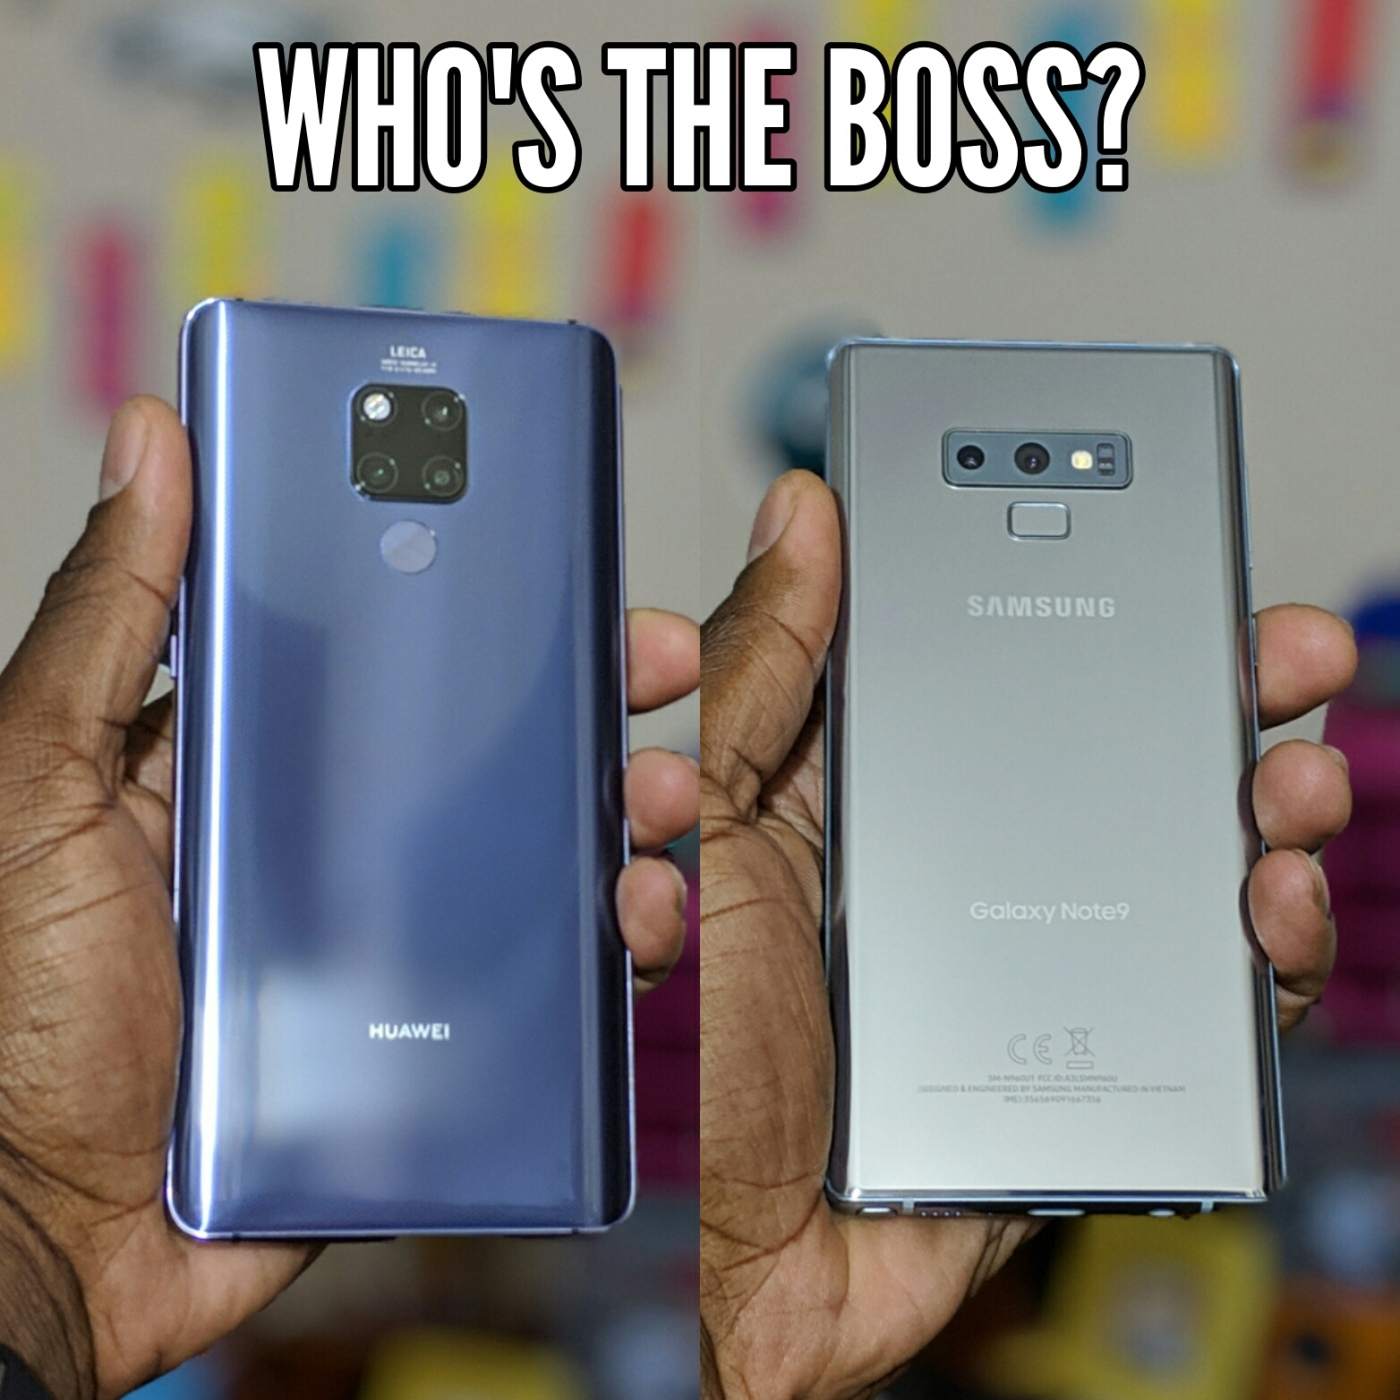 Huawei Mate 20 X VS Samsung Galaxy Note 9 | Who's the Boss